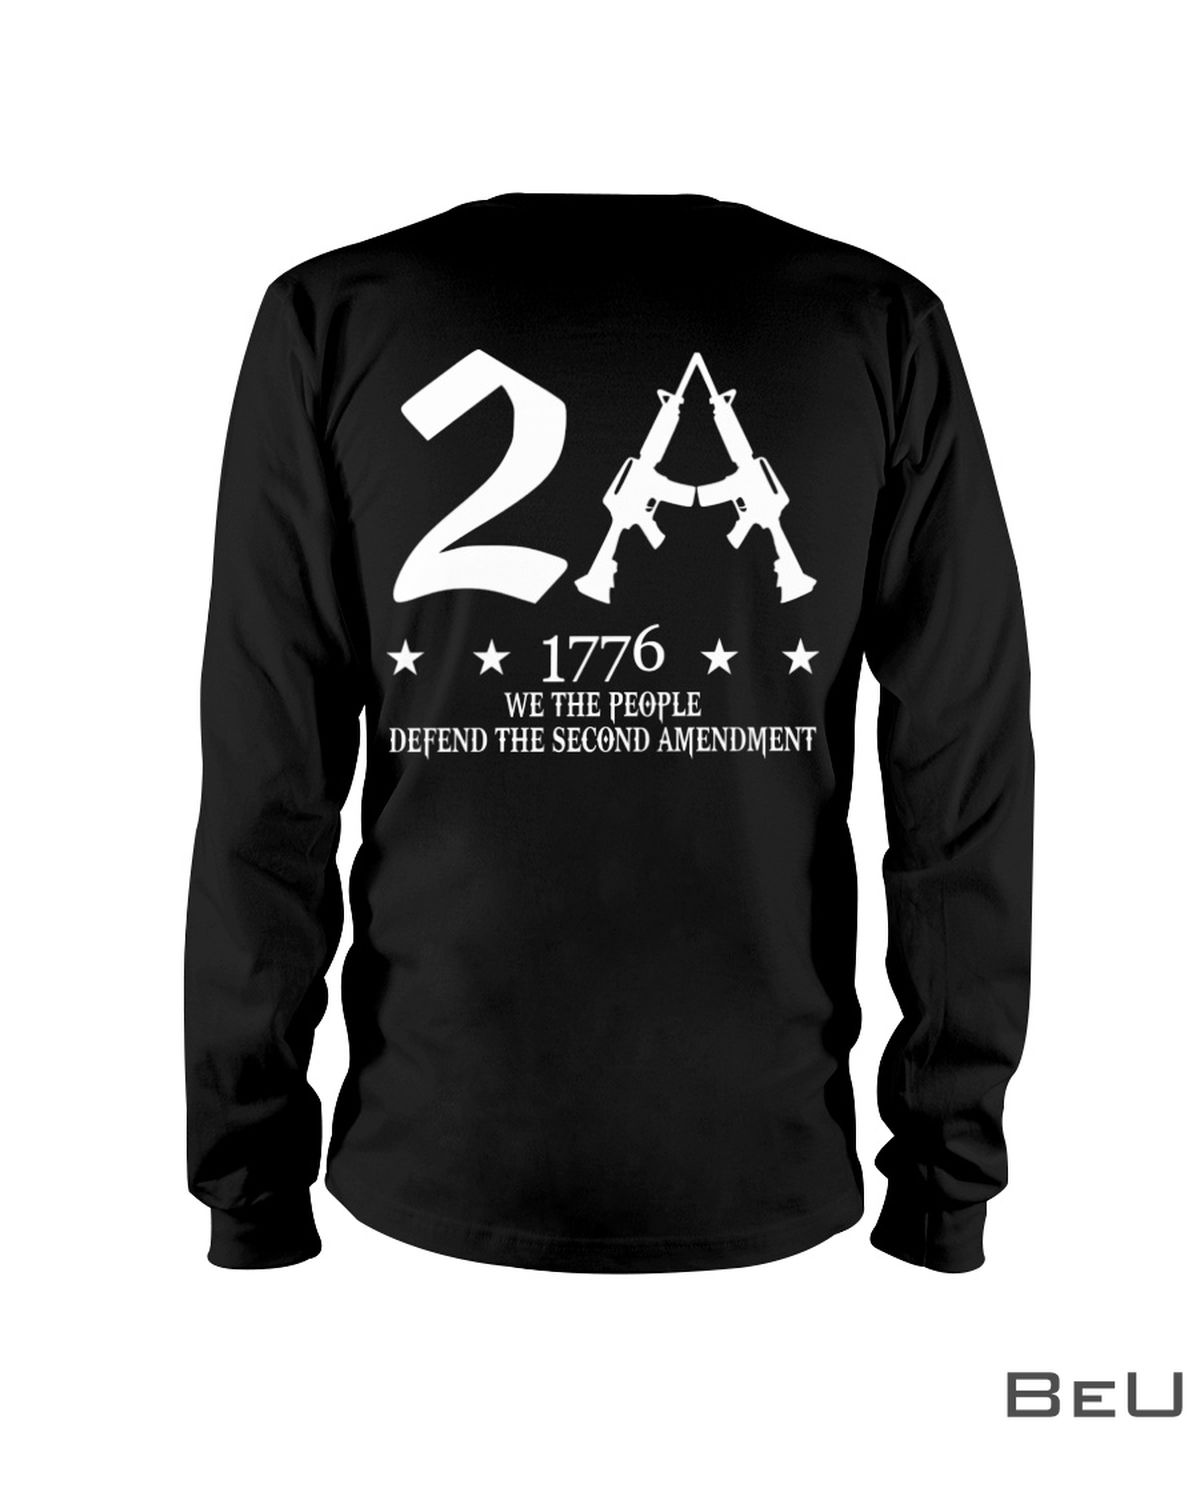 2A 1776 We The People Defend The Second Amendment Shirtc